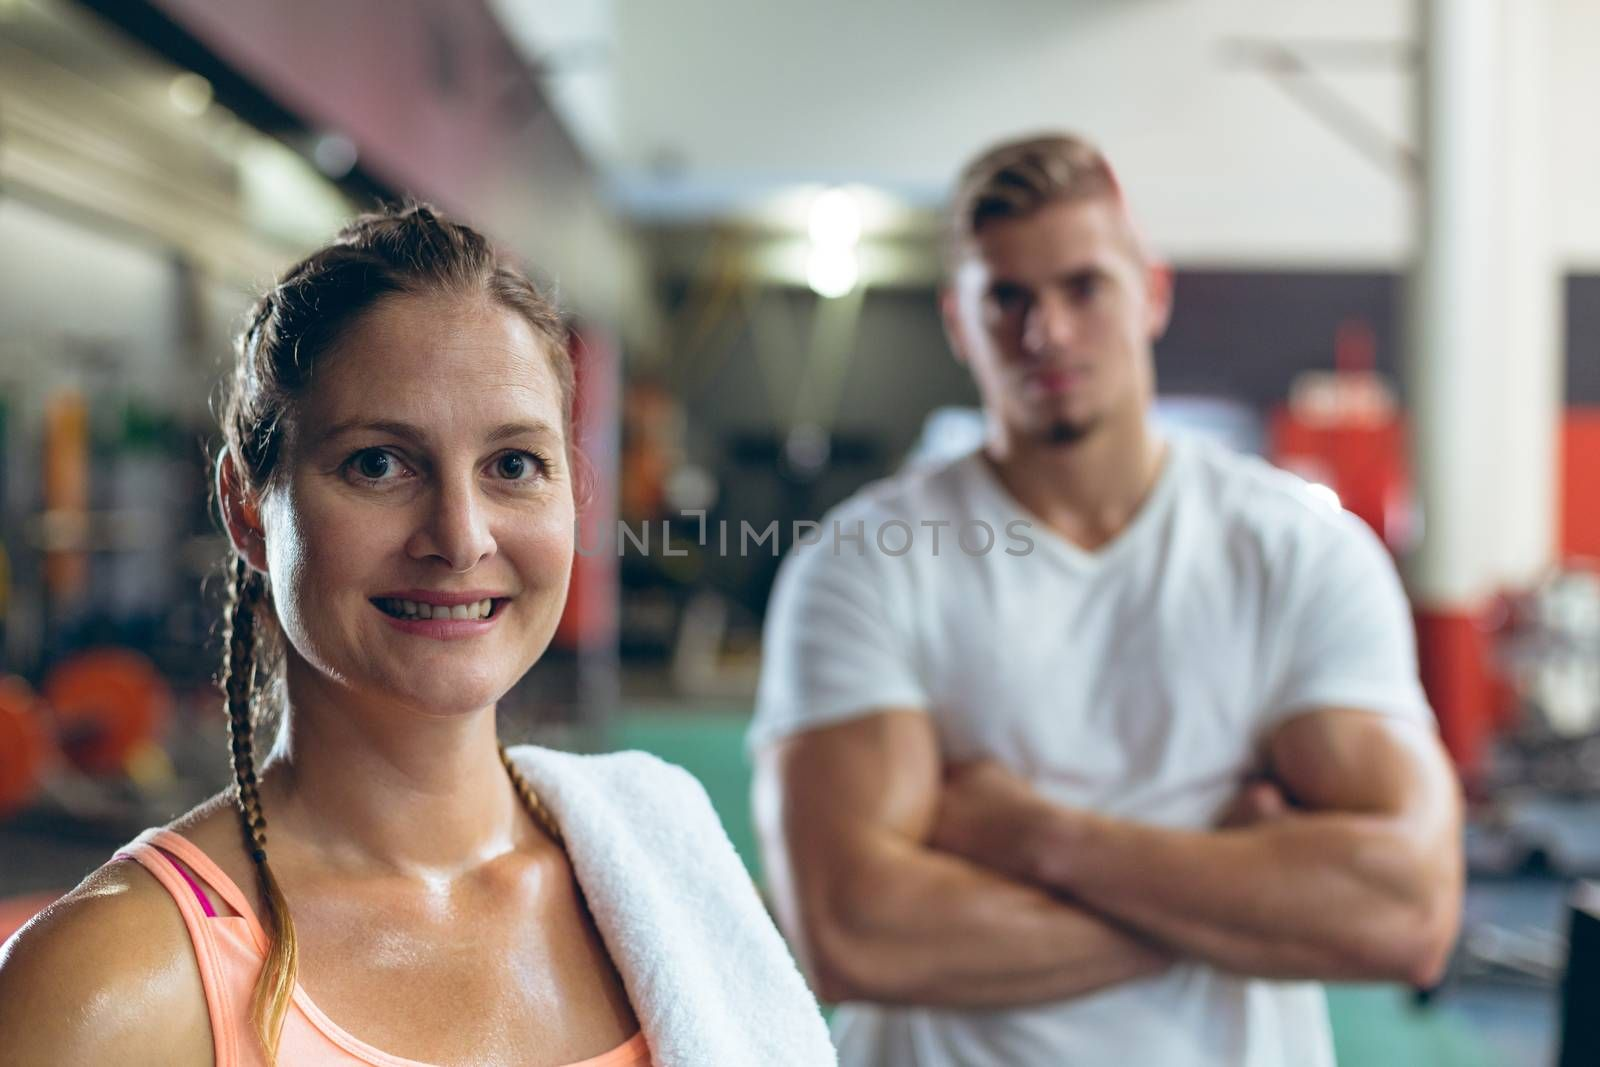 Portrait close-up of pretty Caucasian female athlete looking at camera in fitness center. Handsome young Caucasian man is standing in the background. Bright modern gym with fit healthy people working out and training